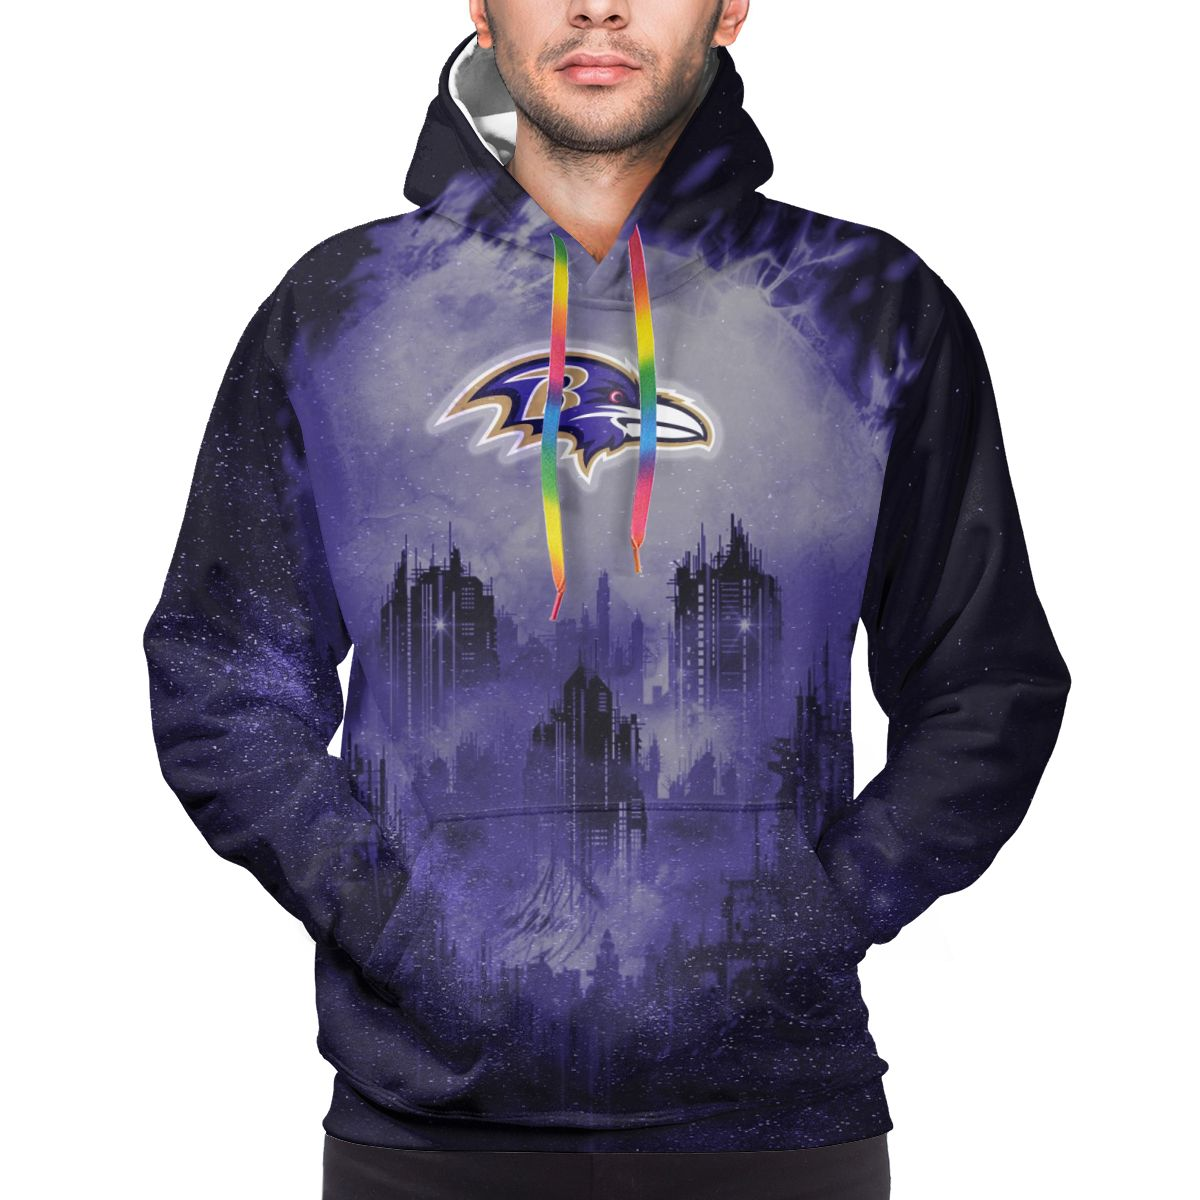 Armageddon Ravens Logo Print Hoodies For Men Pullover Sweatshirt